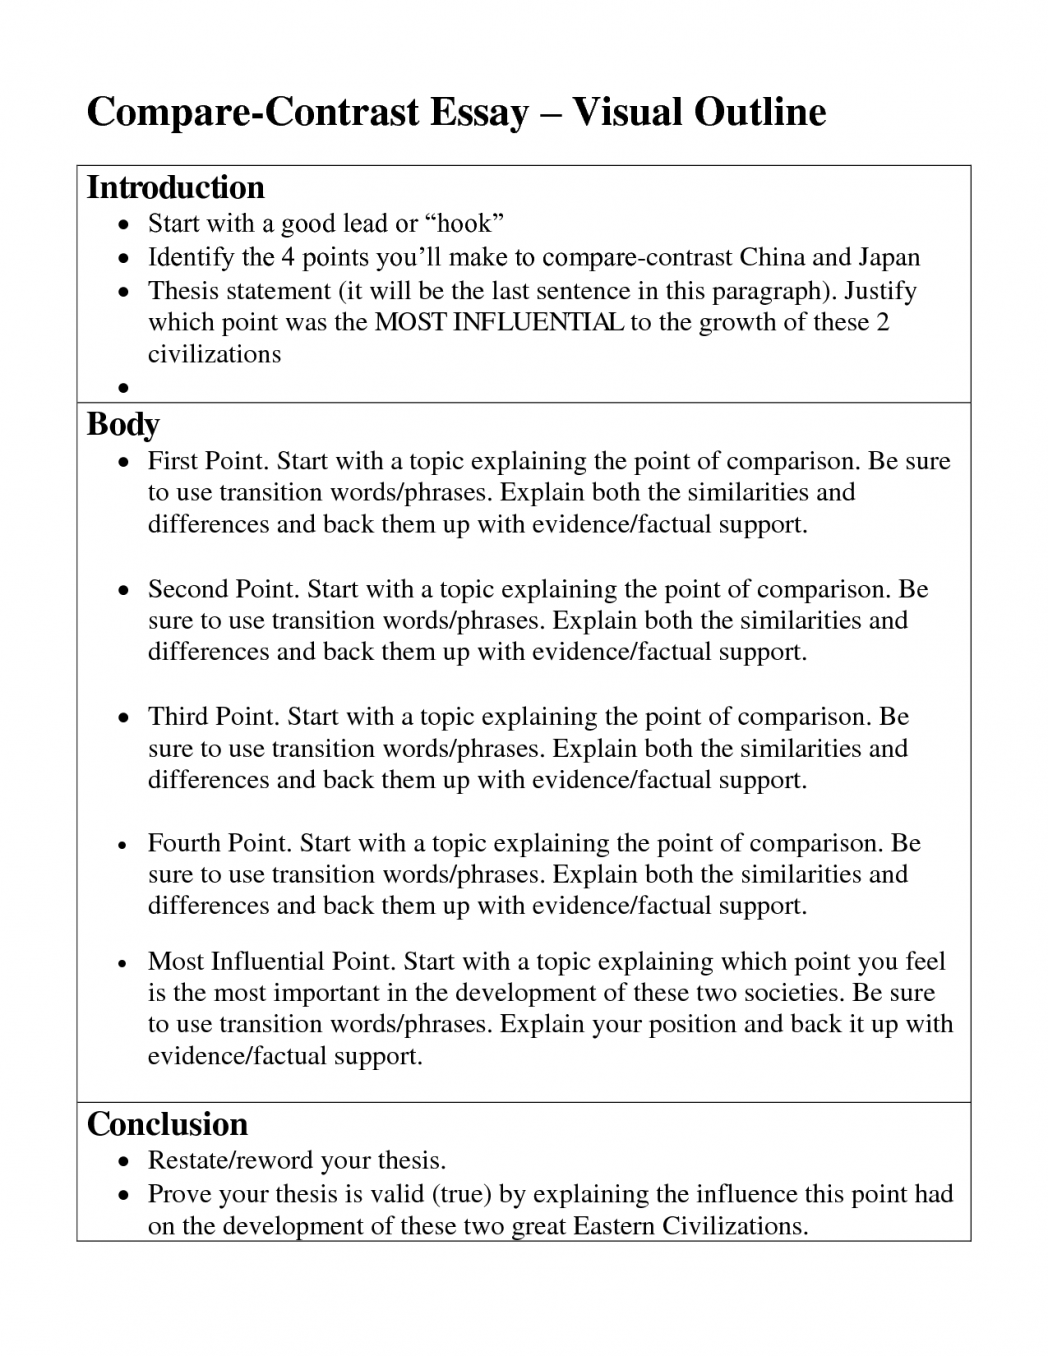 003 Compare And Contrast Essay Topics For High School Students English College Pdf Research Paper 1048x1356 Stupendous Middle Elementary Full